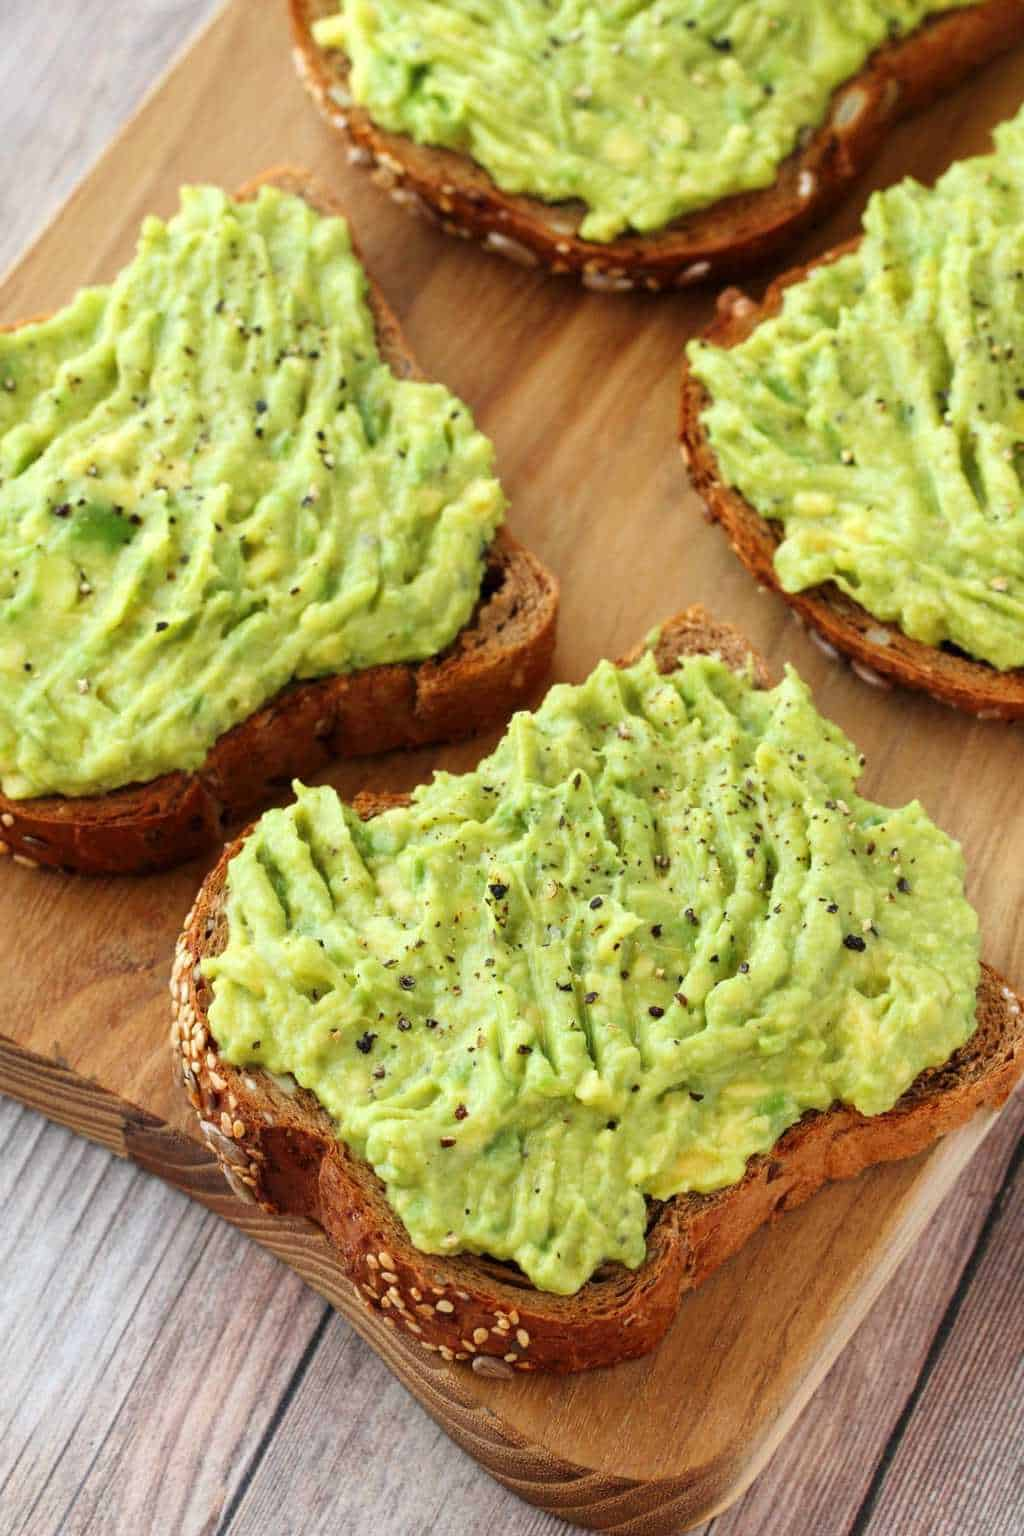 Avocado Toast topped with black pepper.